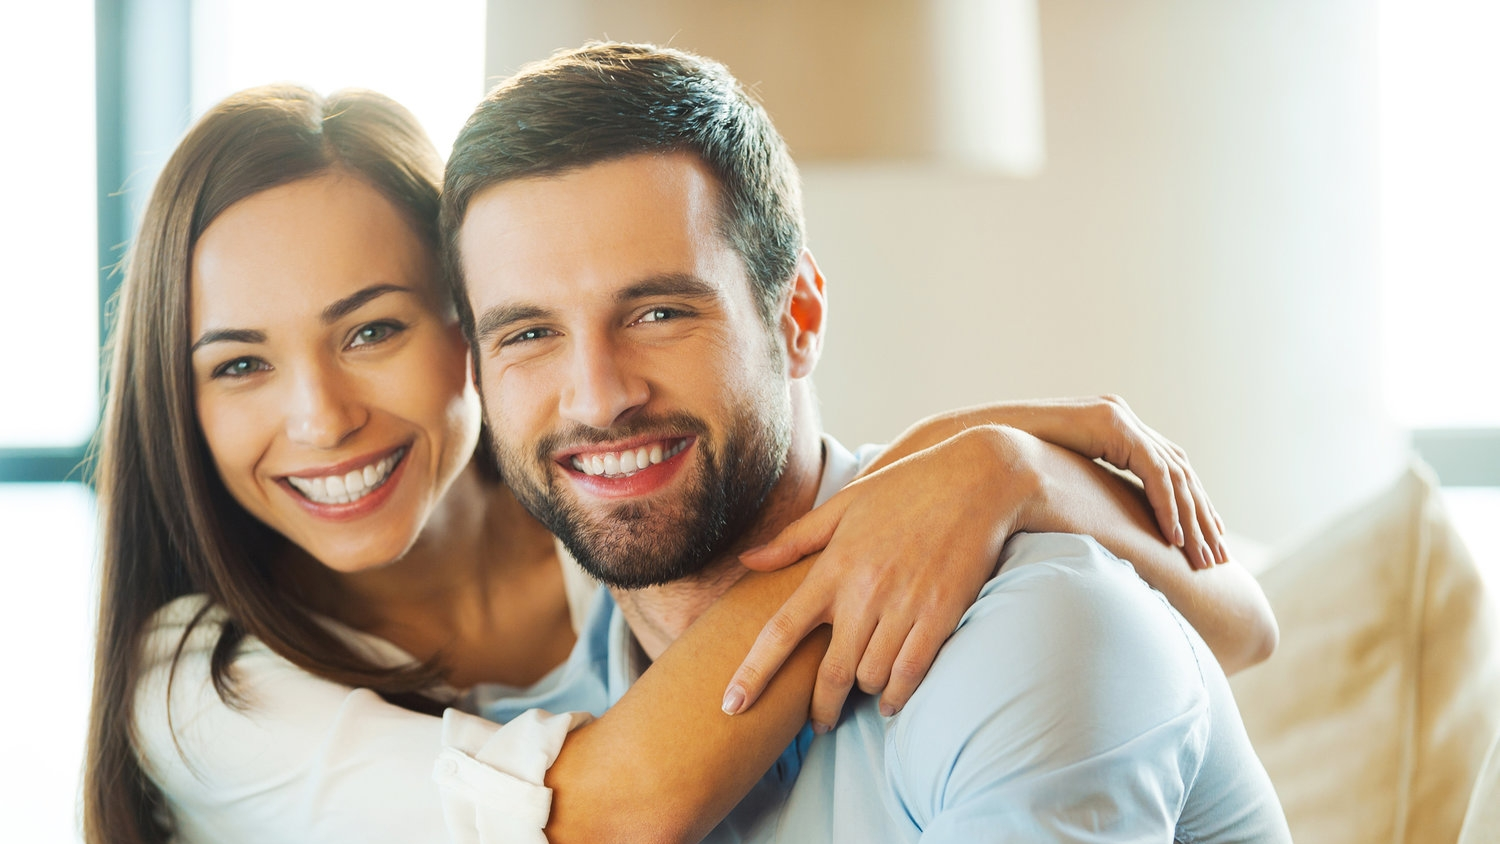 COUPLES THERAPY - Couples therapy is the interaction between a therapist and members of a romantic relationship.